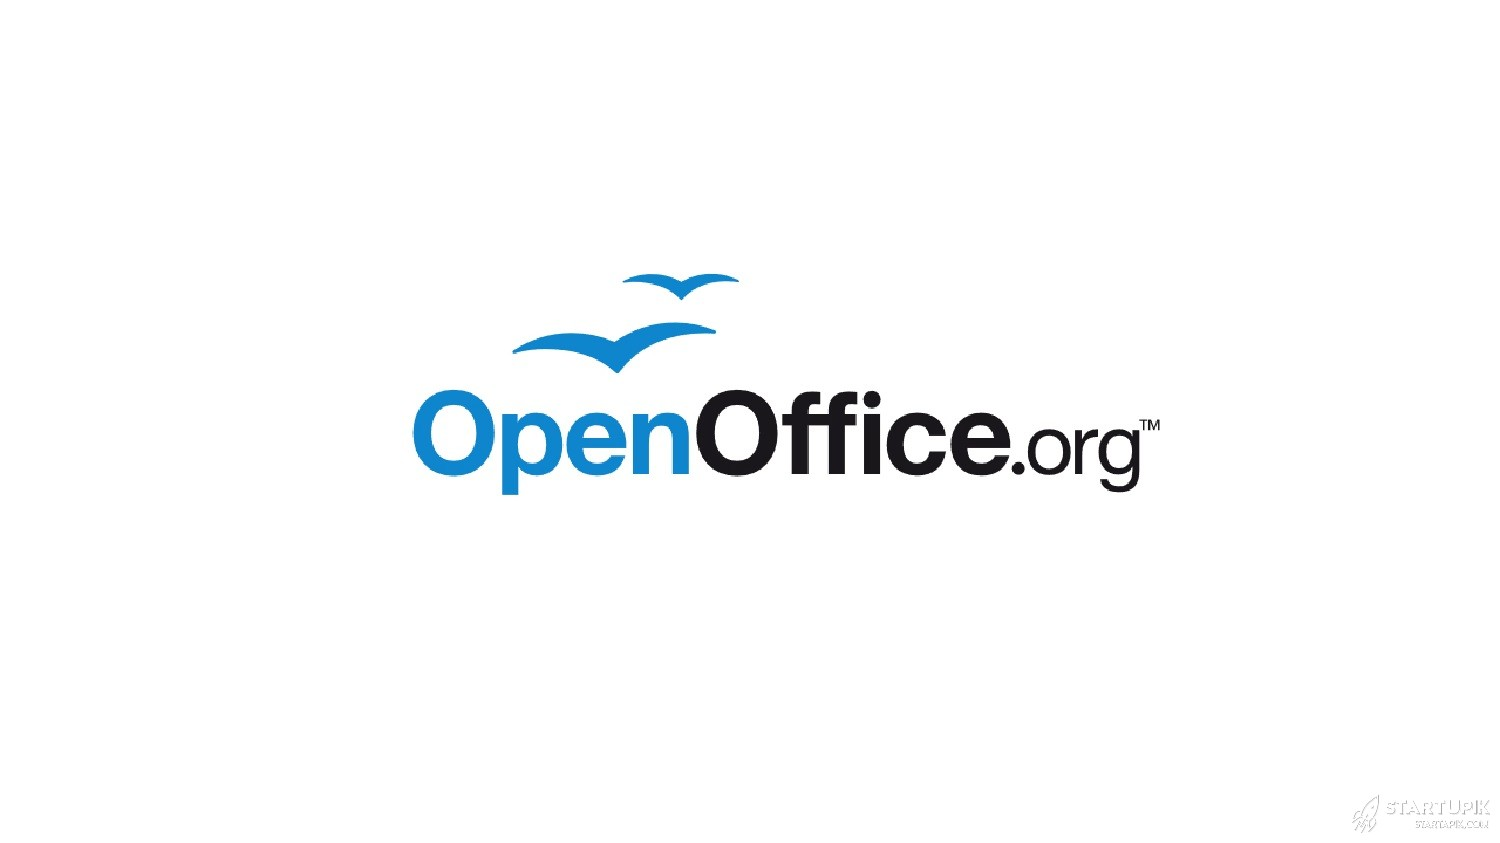 Get office services for free with open office